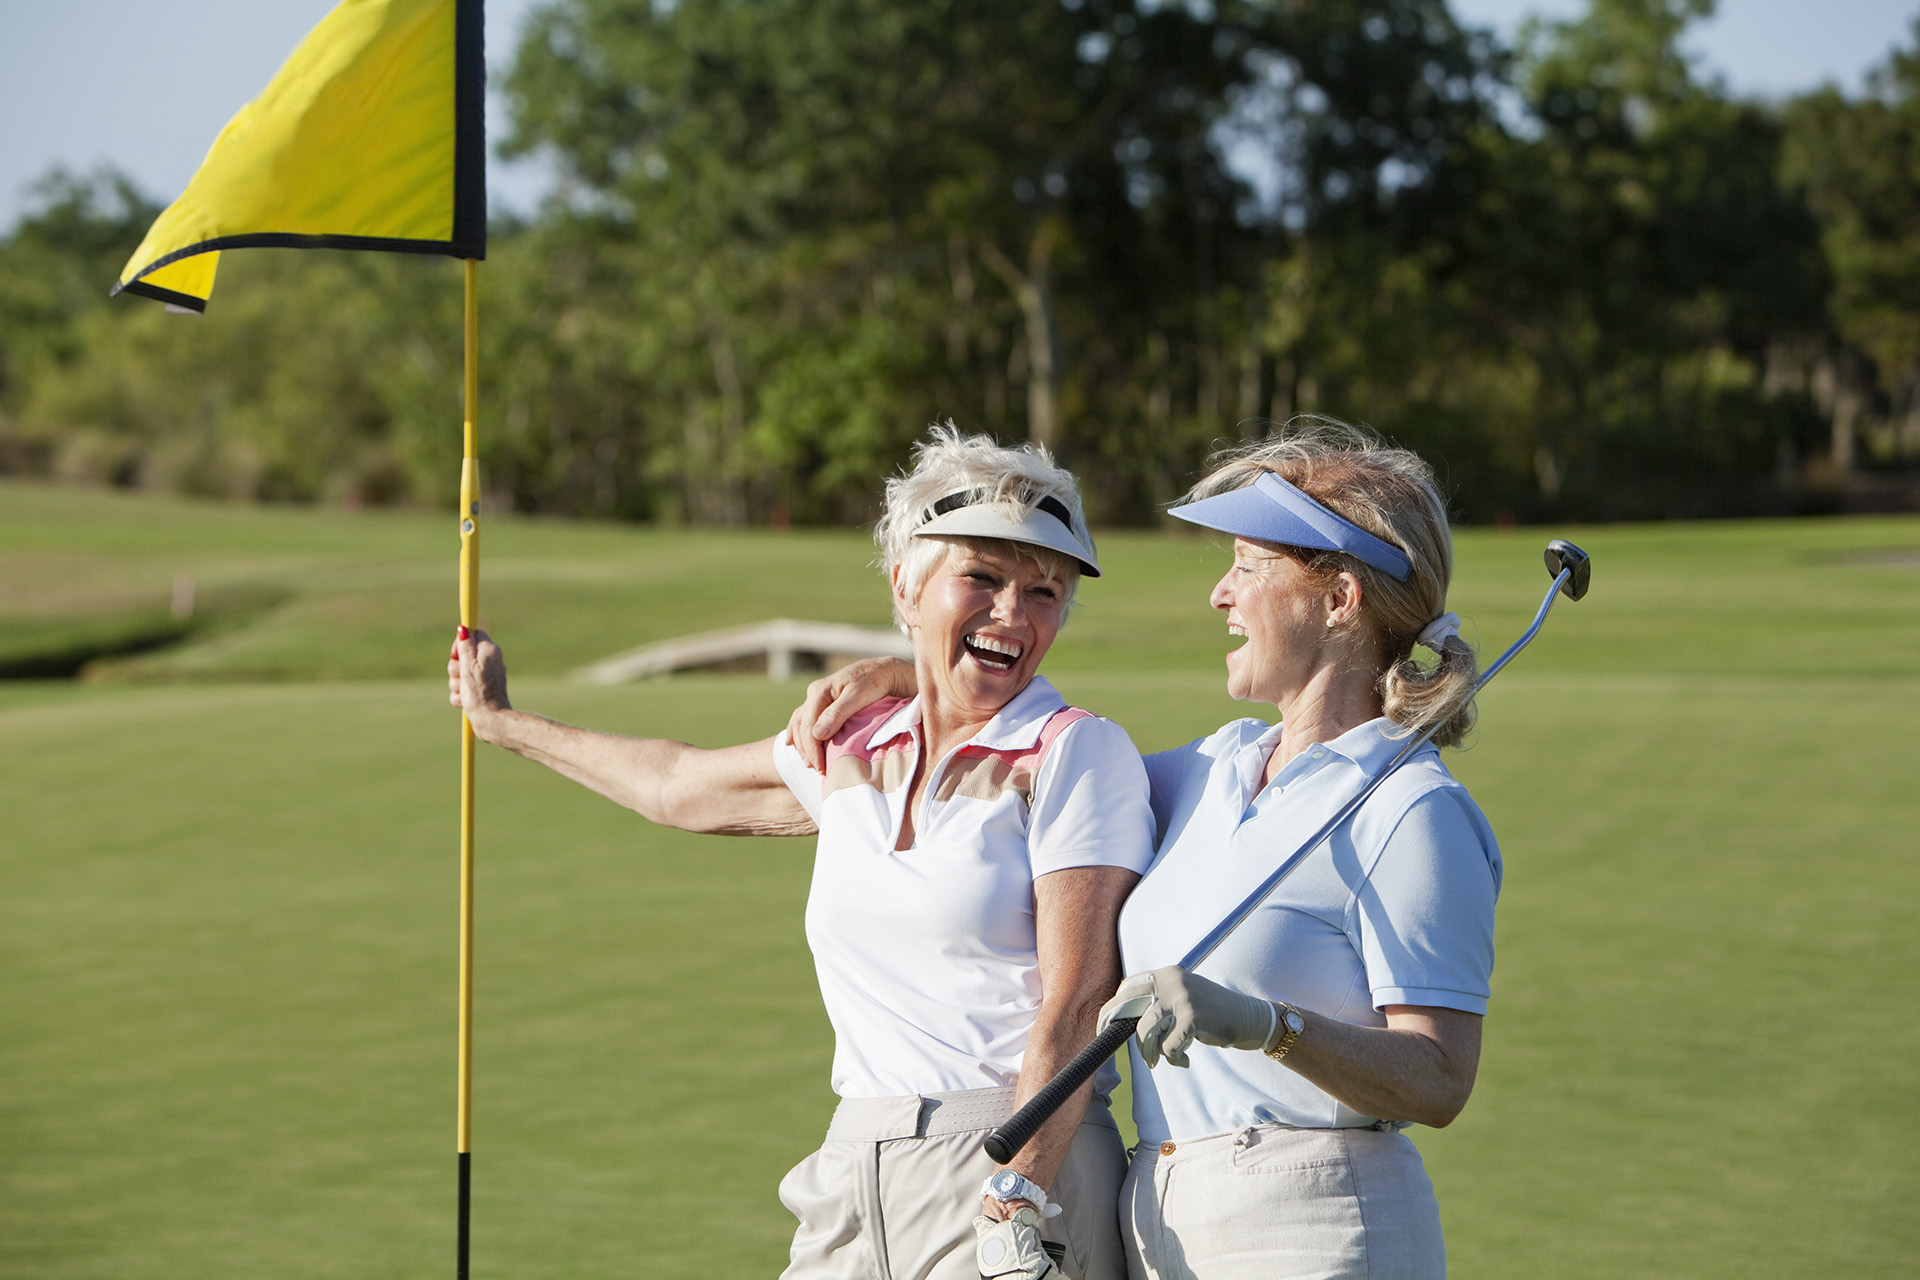 Ladies' playing golf at Addison Reserve in Florida